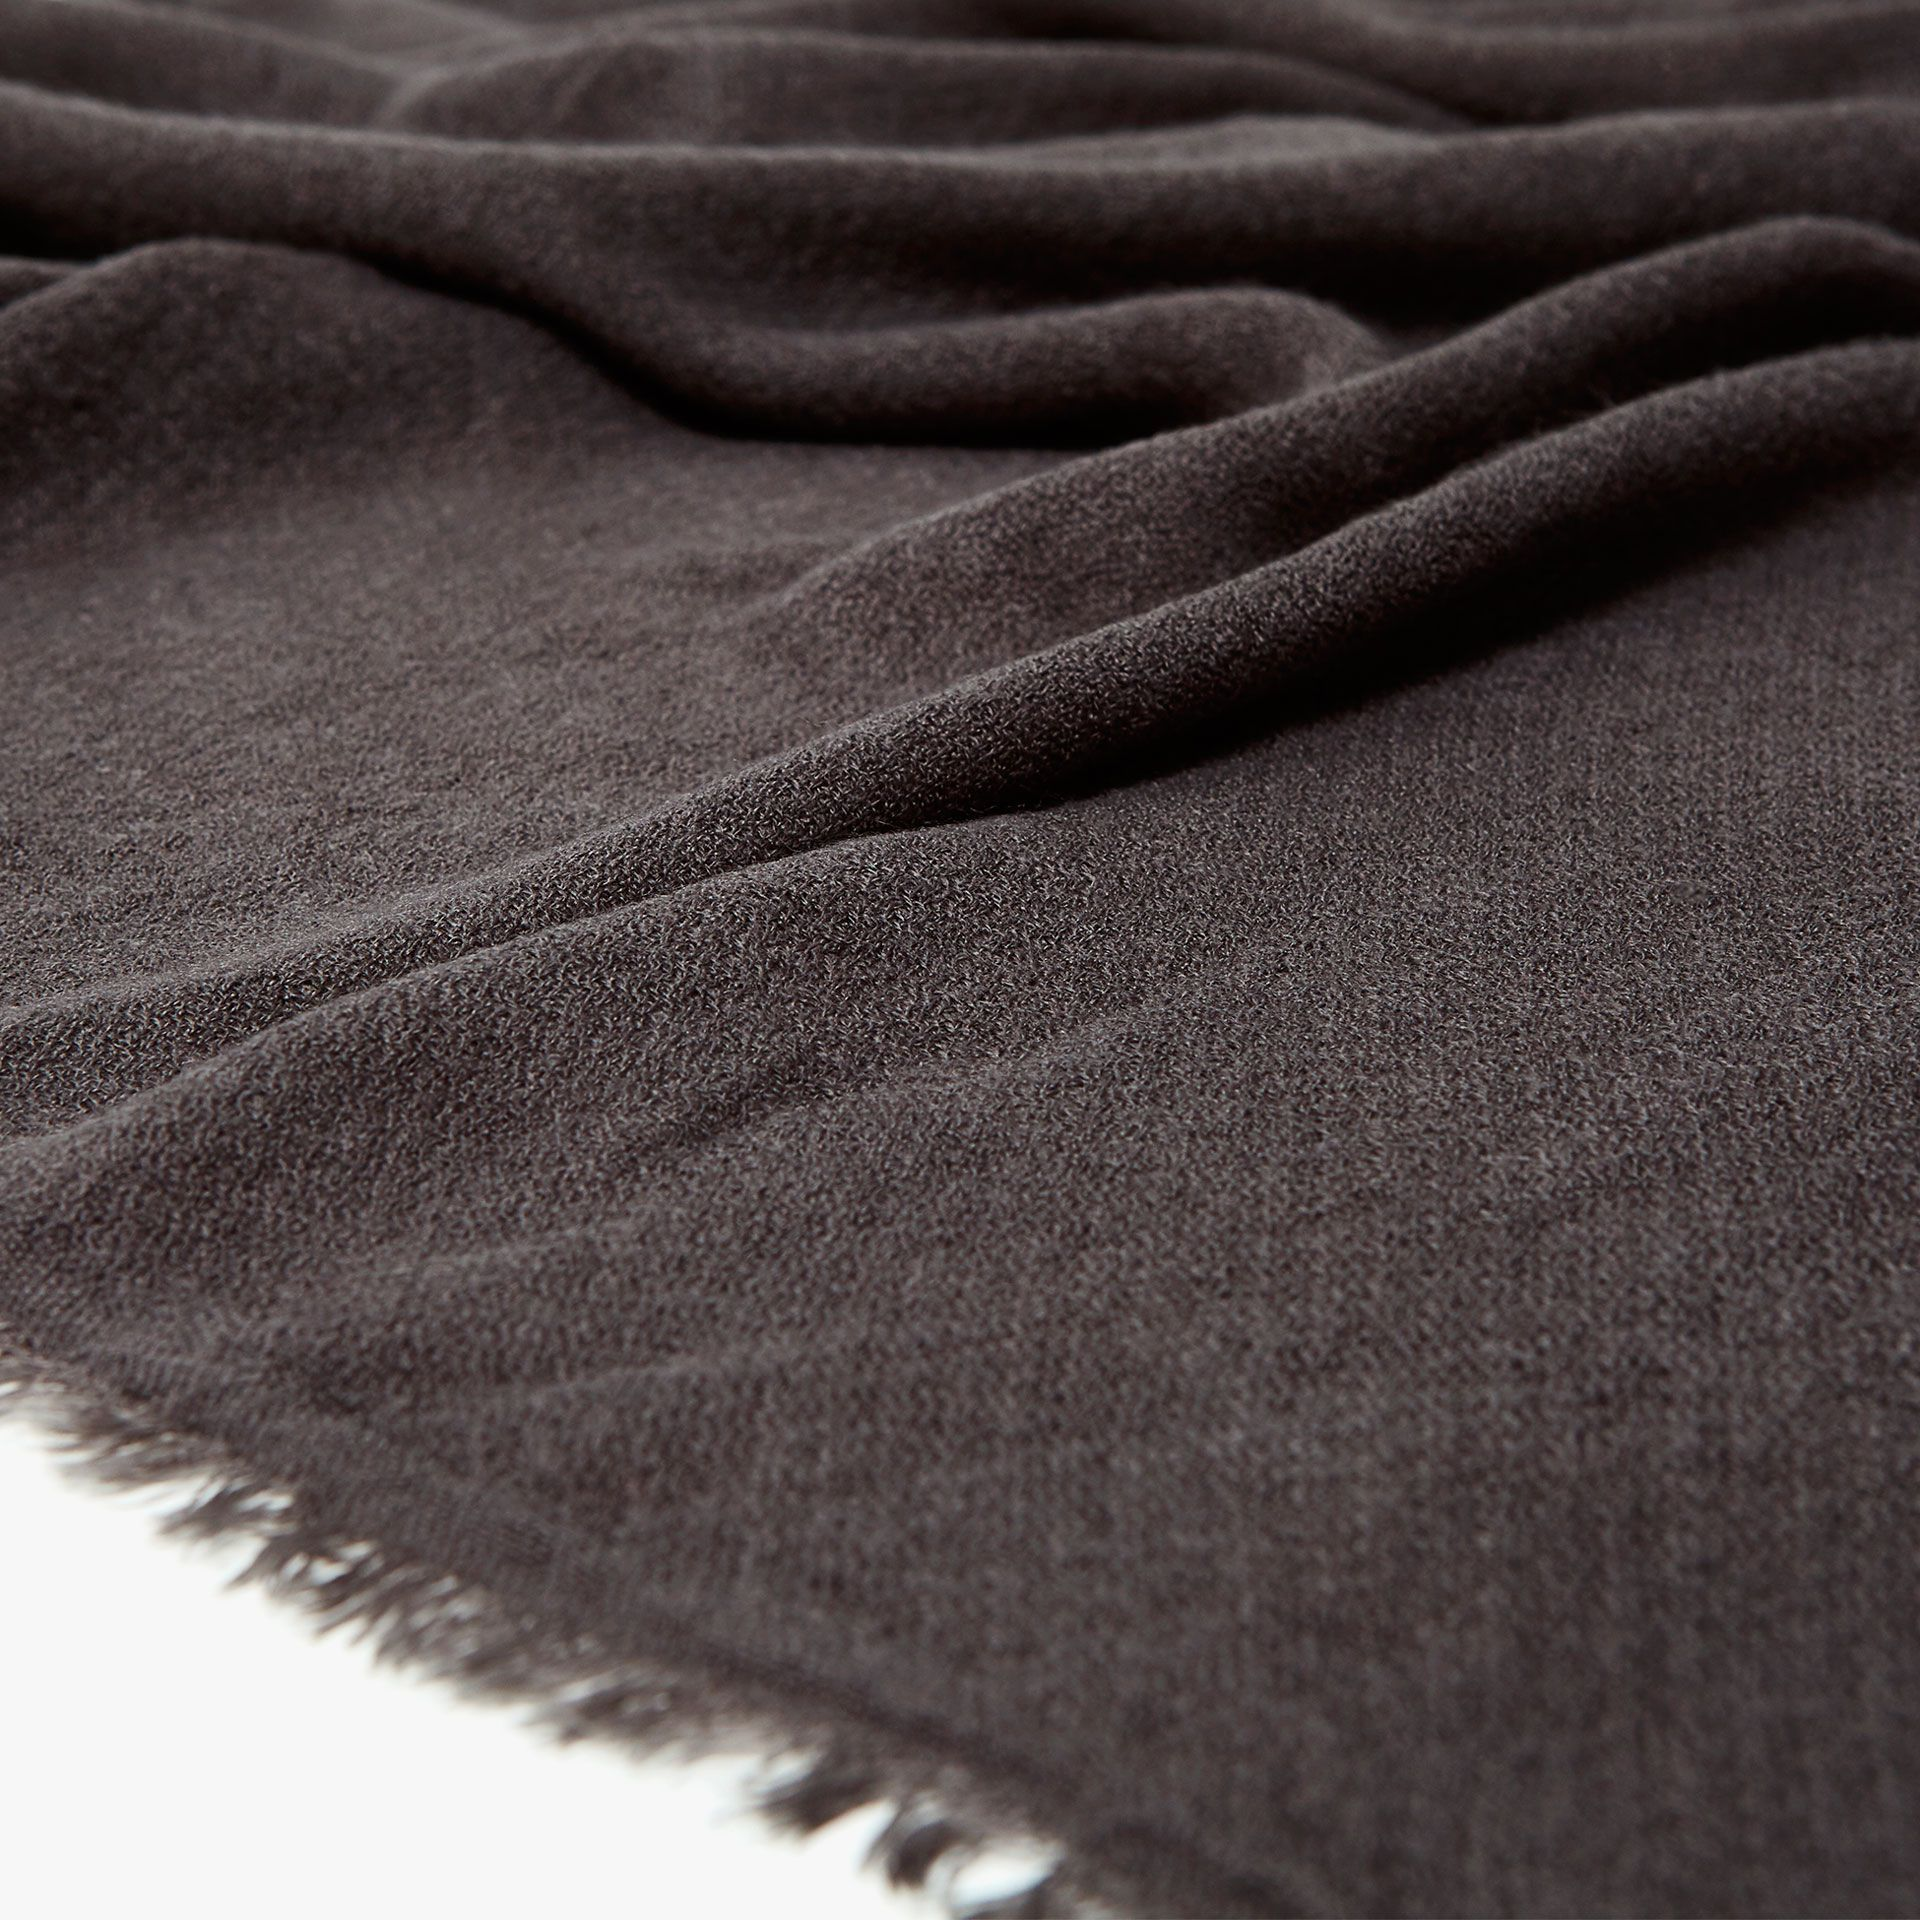 Image 3 of the product SOLID-COLOURED FOULARD BLANKET WITH FRINGE ... 7ca9a29250